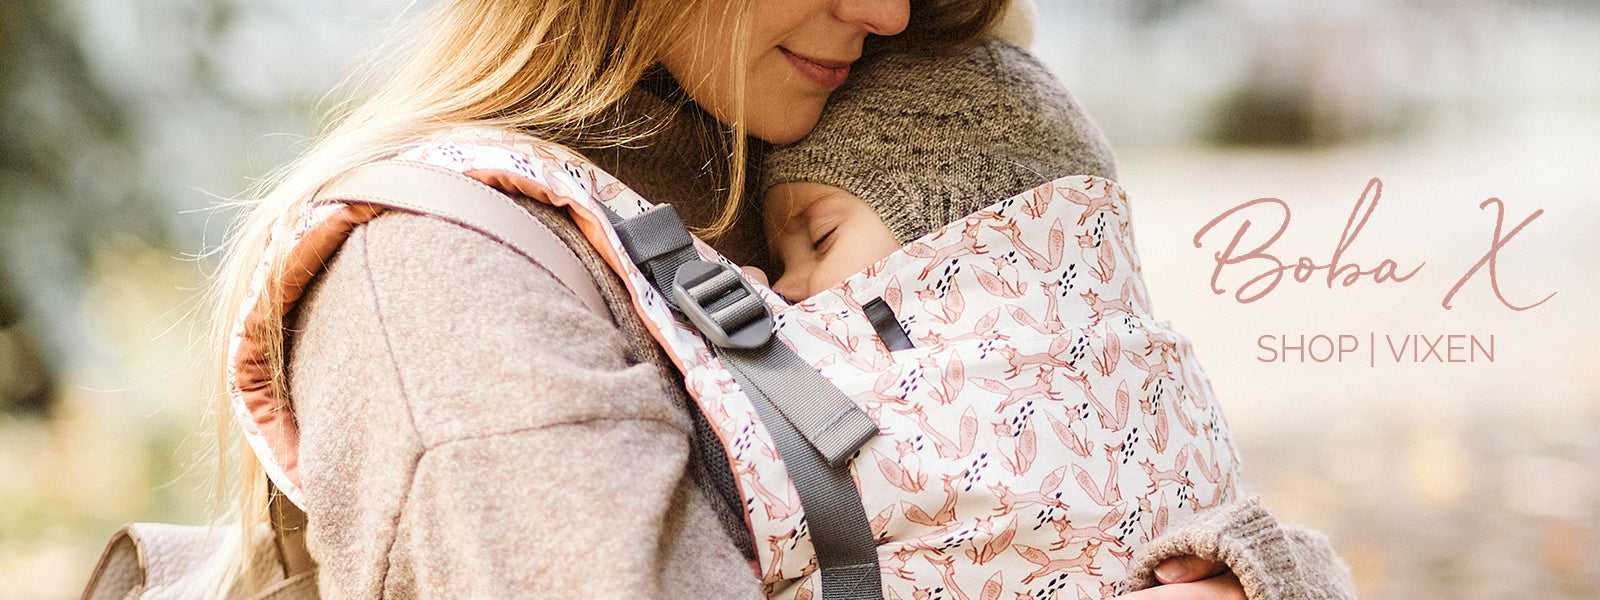 Baby Carriers Wraps Boba Safe Stylish Baby Wearing Boba